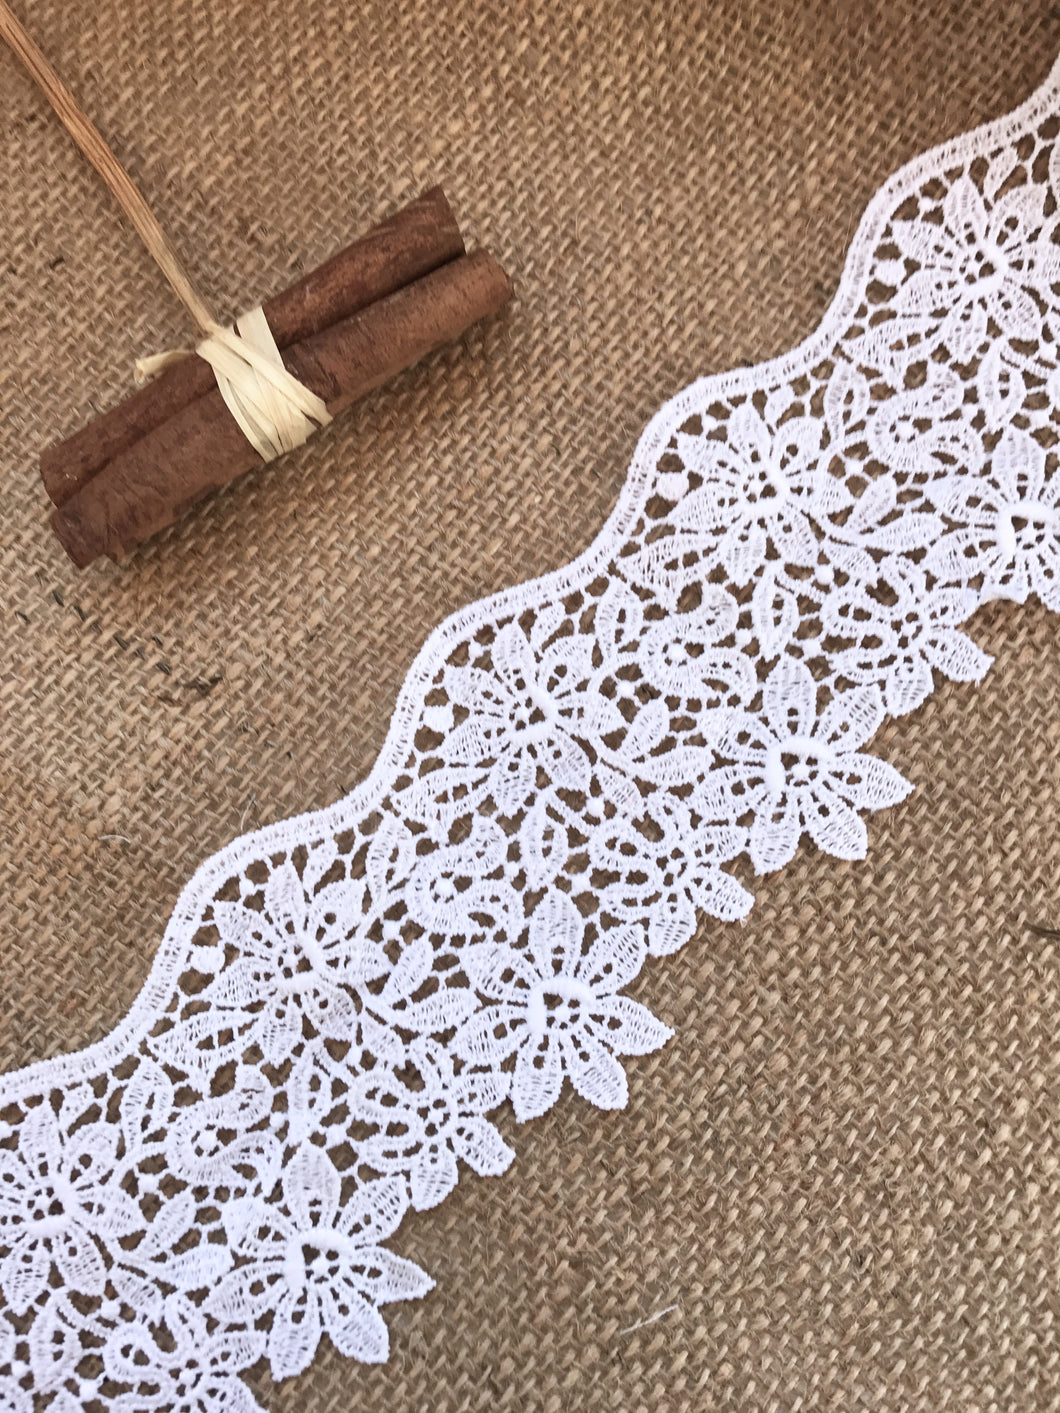 Beautiful-White Pom-pom trim lace Embellished-with-Pearls meters